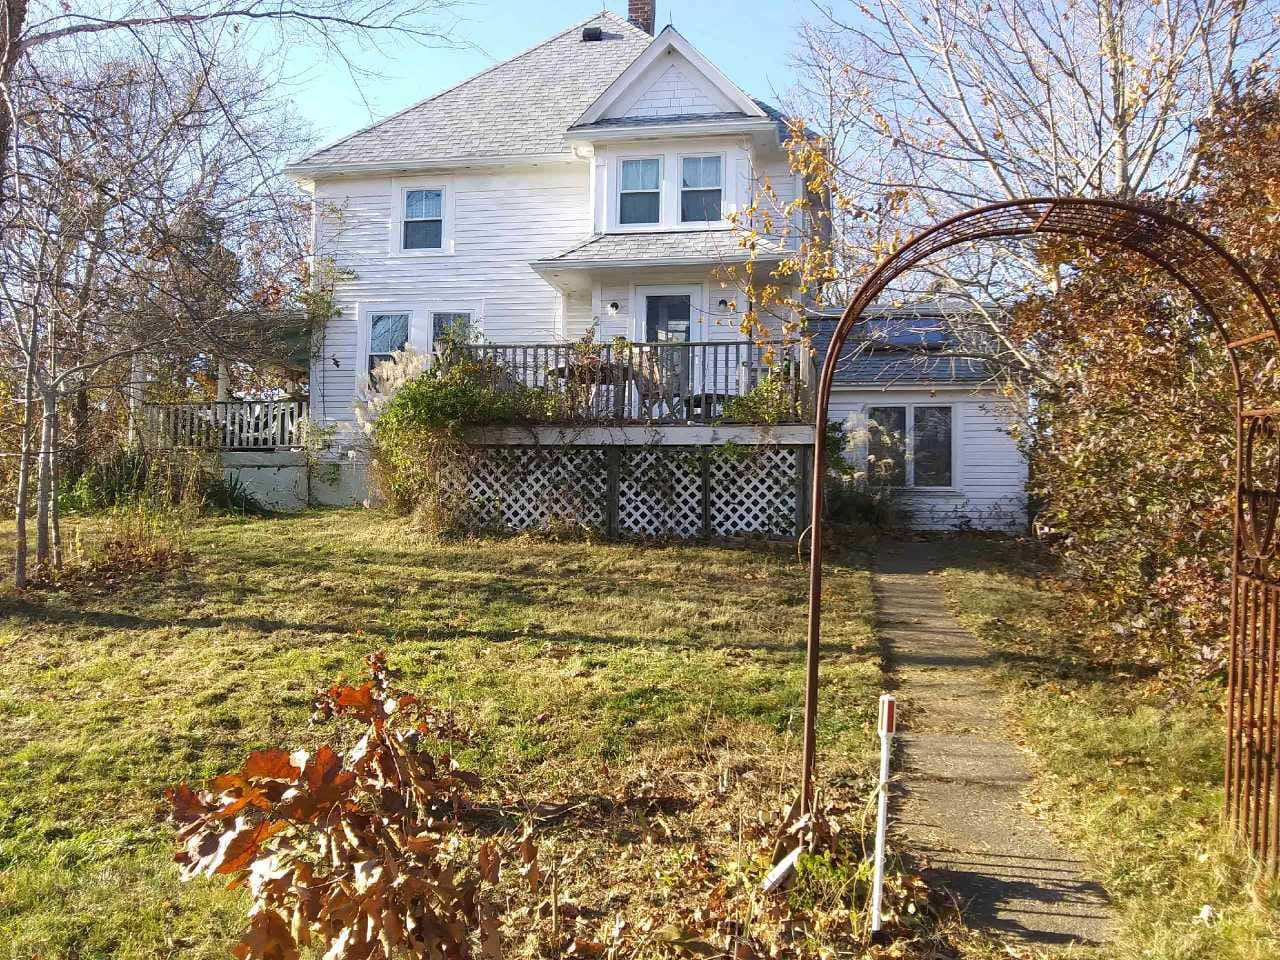 2 Albert's Way entrance. View of 2nd floor Double & Queen sized bedroom windows. Walk to harbor, ferries, historic East Chop Highlands, Oak Bluffs library, hospital, downtown center and beaches. Public transport on N.Y. ave direct access to amenities